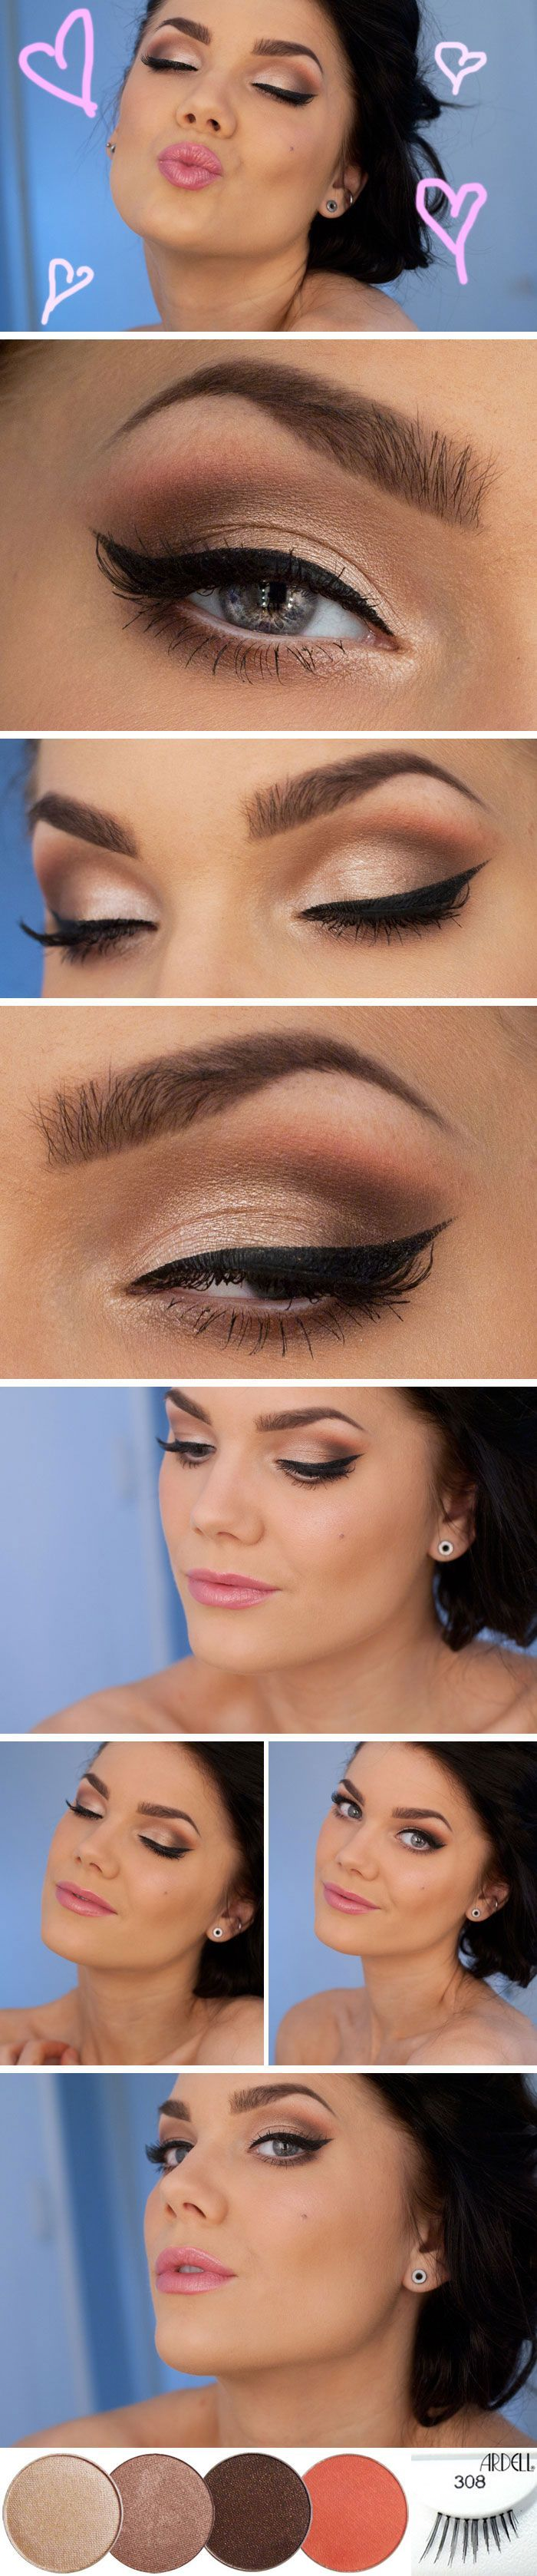 DIY :: Valentine's Day Makeup by Linda Hallberg :: CLICK for product list...using MakeupGeek shadows (4, shown) & some eyeprimer, eyeliner & Ardell 308 lashes (shown) which are just the halfers. Very pretty! | #nyheter24